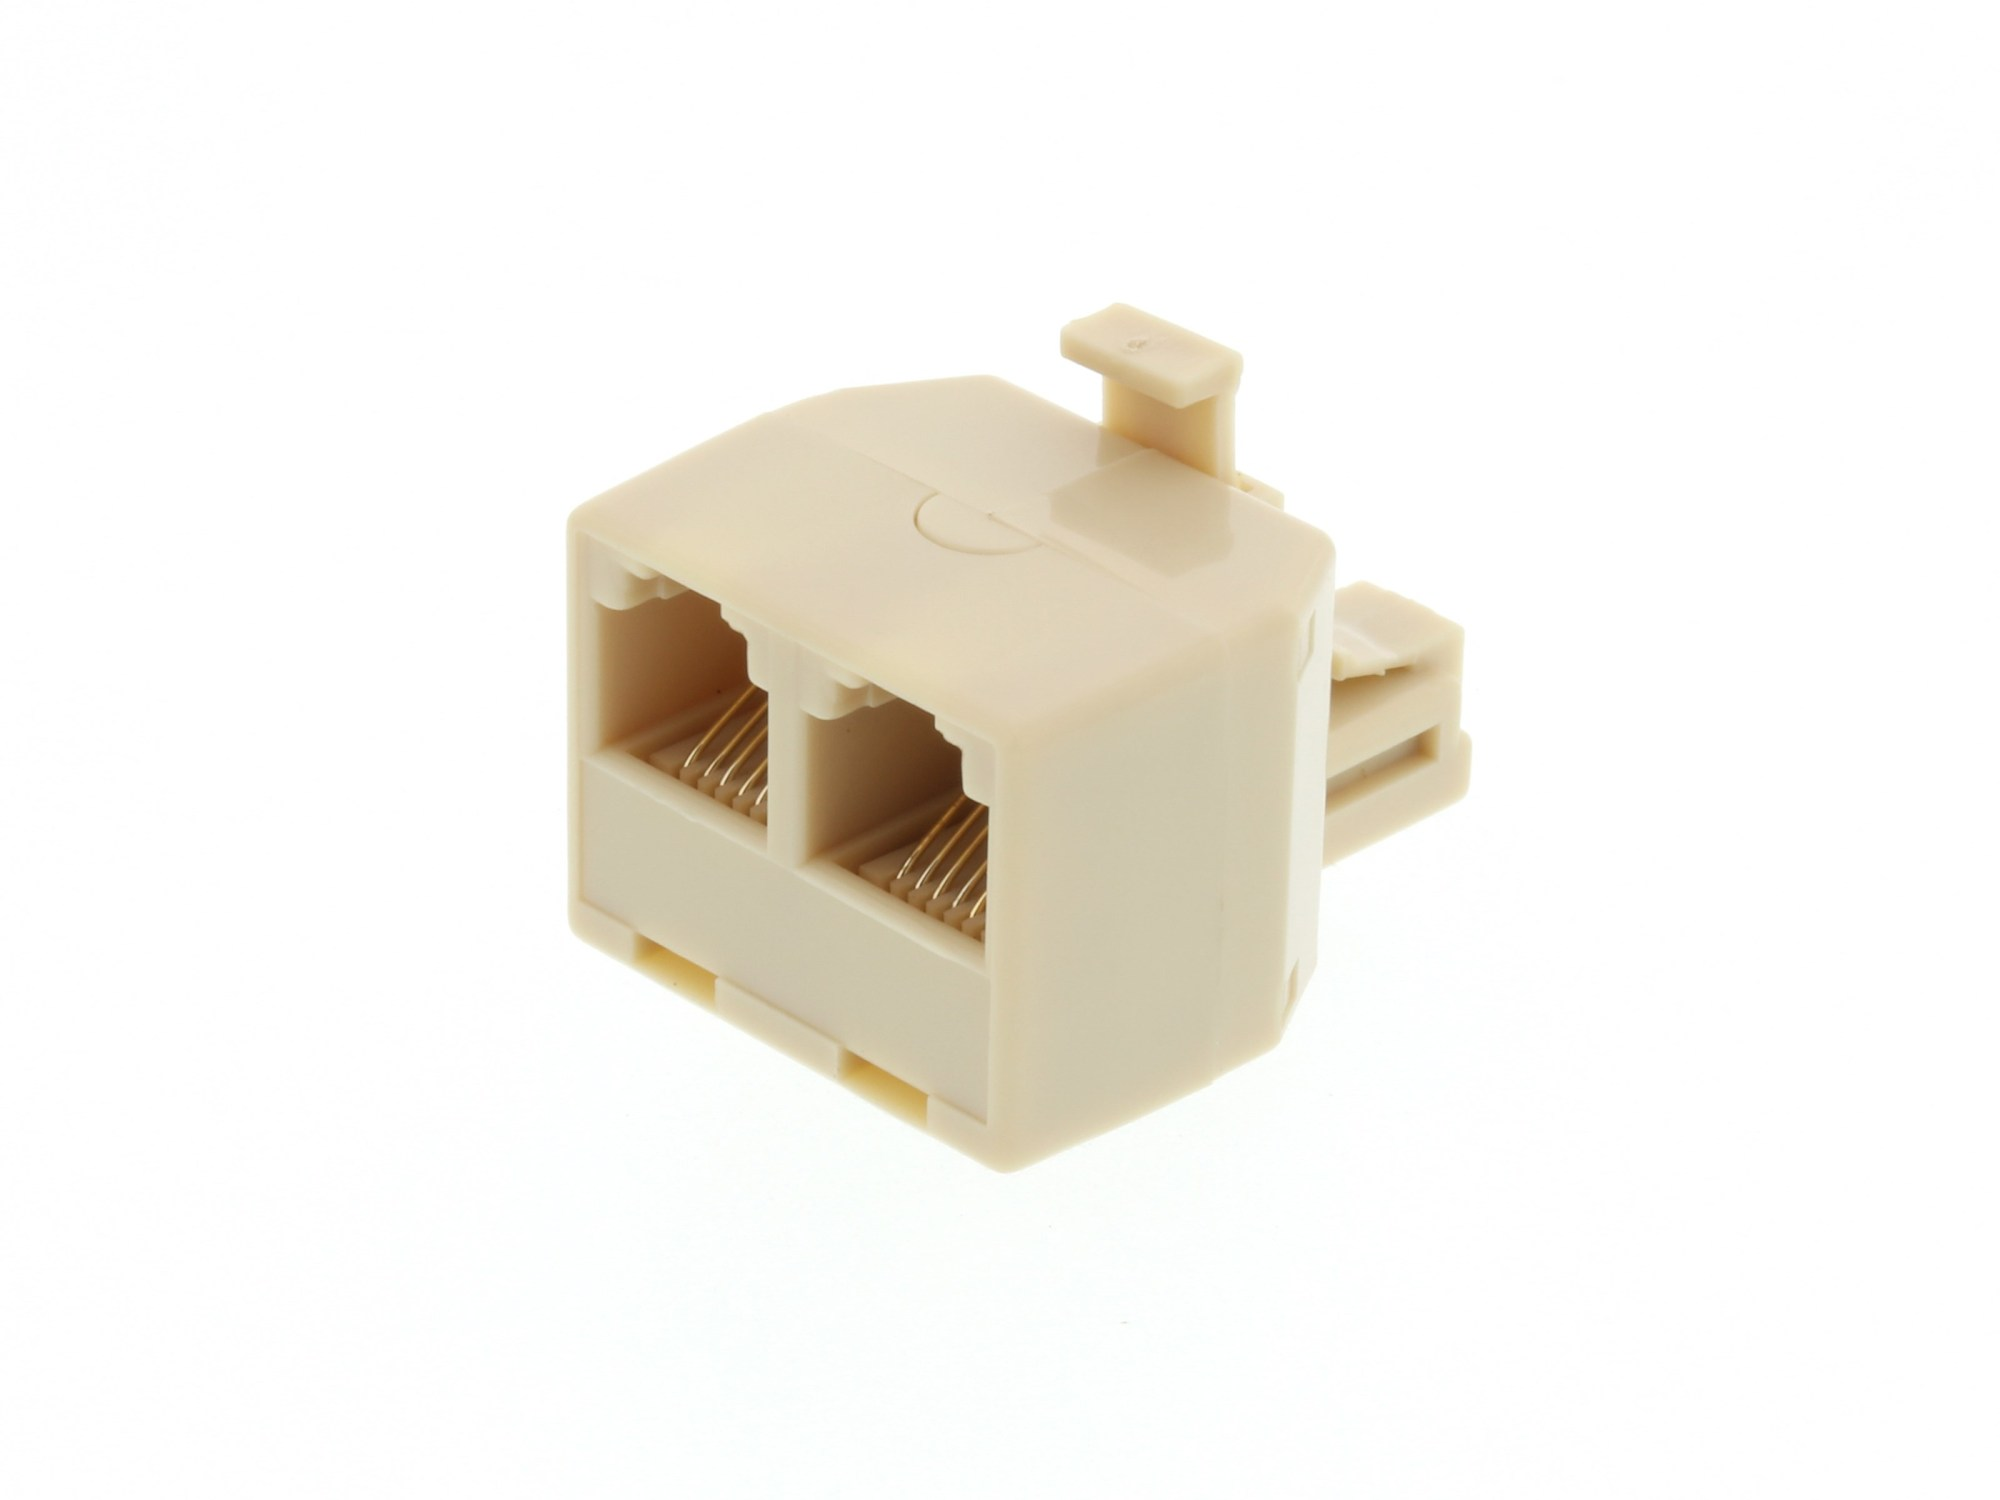 hight resolution of modular voice t adapter 1 male to 2 female rj11 6p6c for 6 wire rj11 connector voice wiring